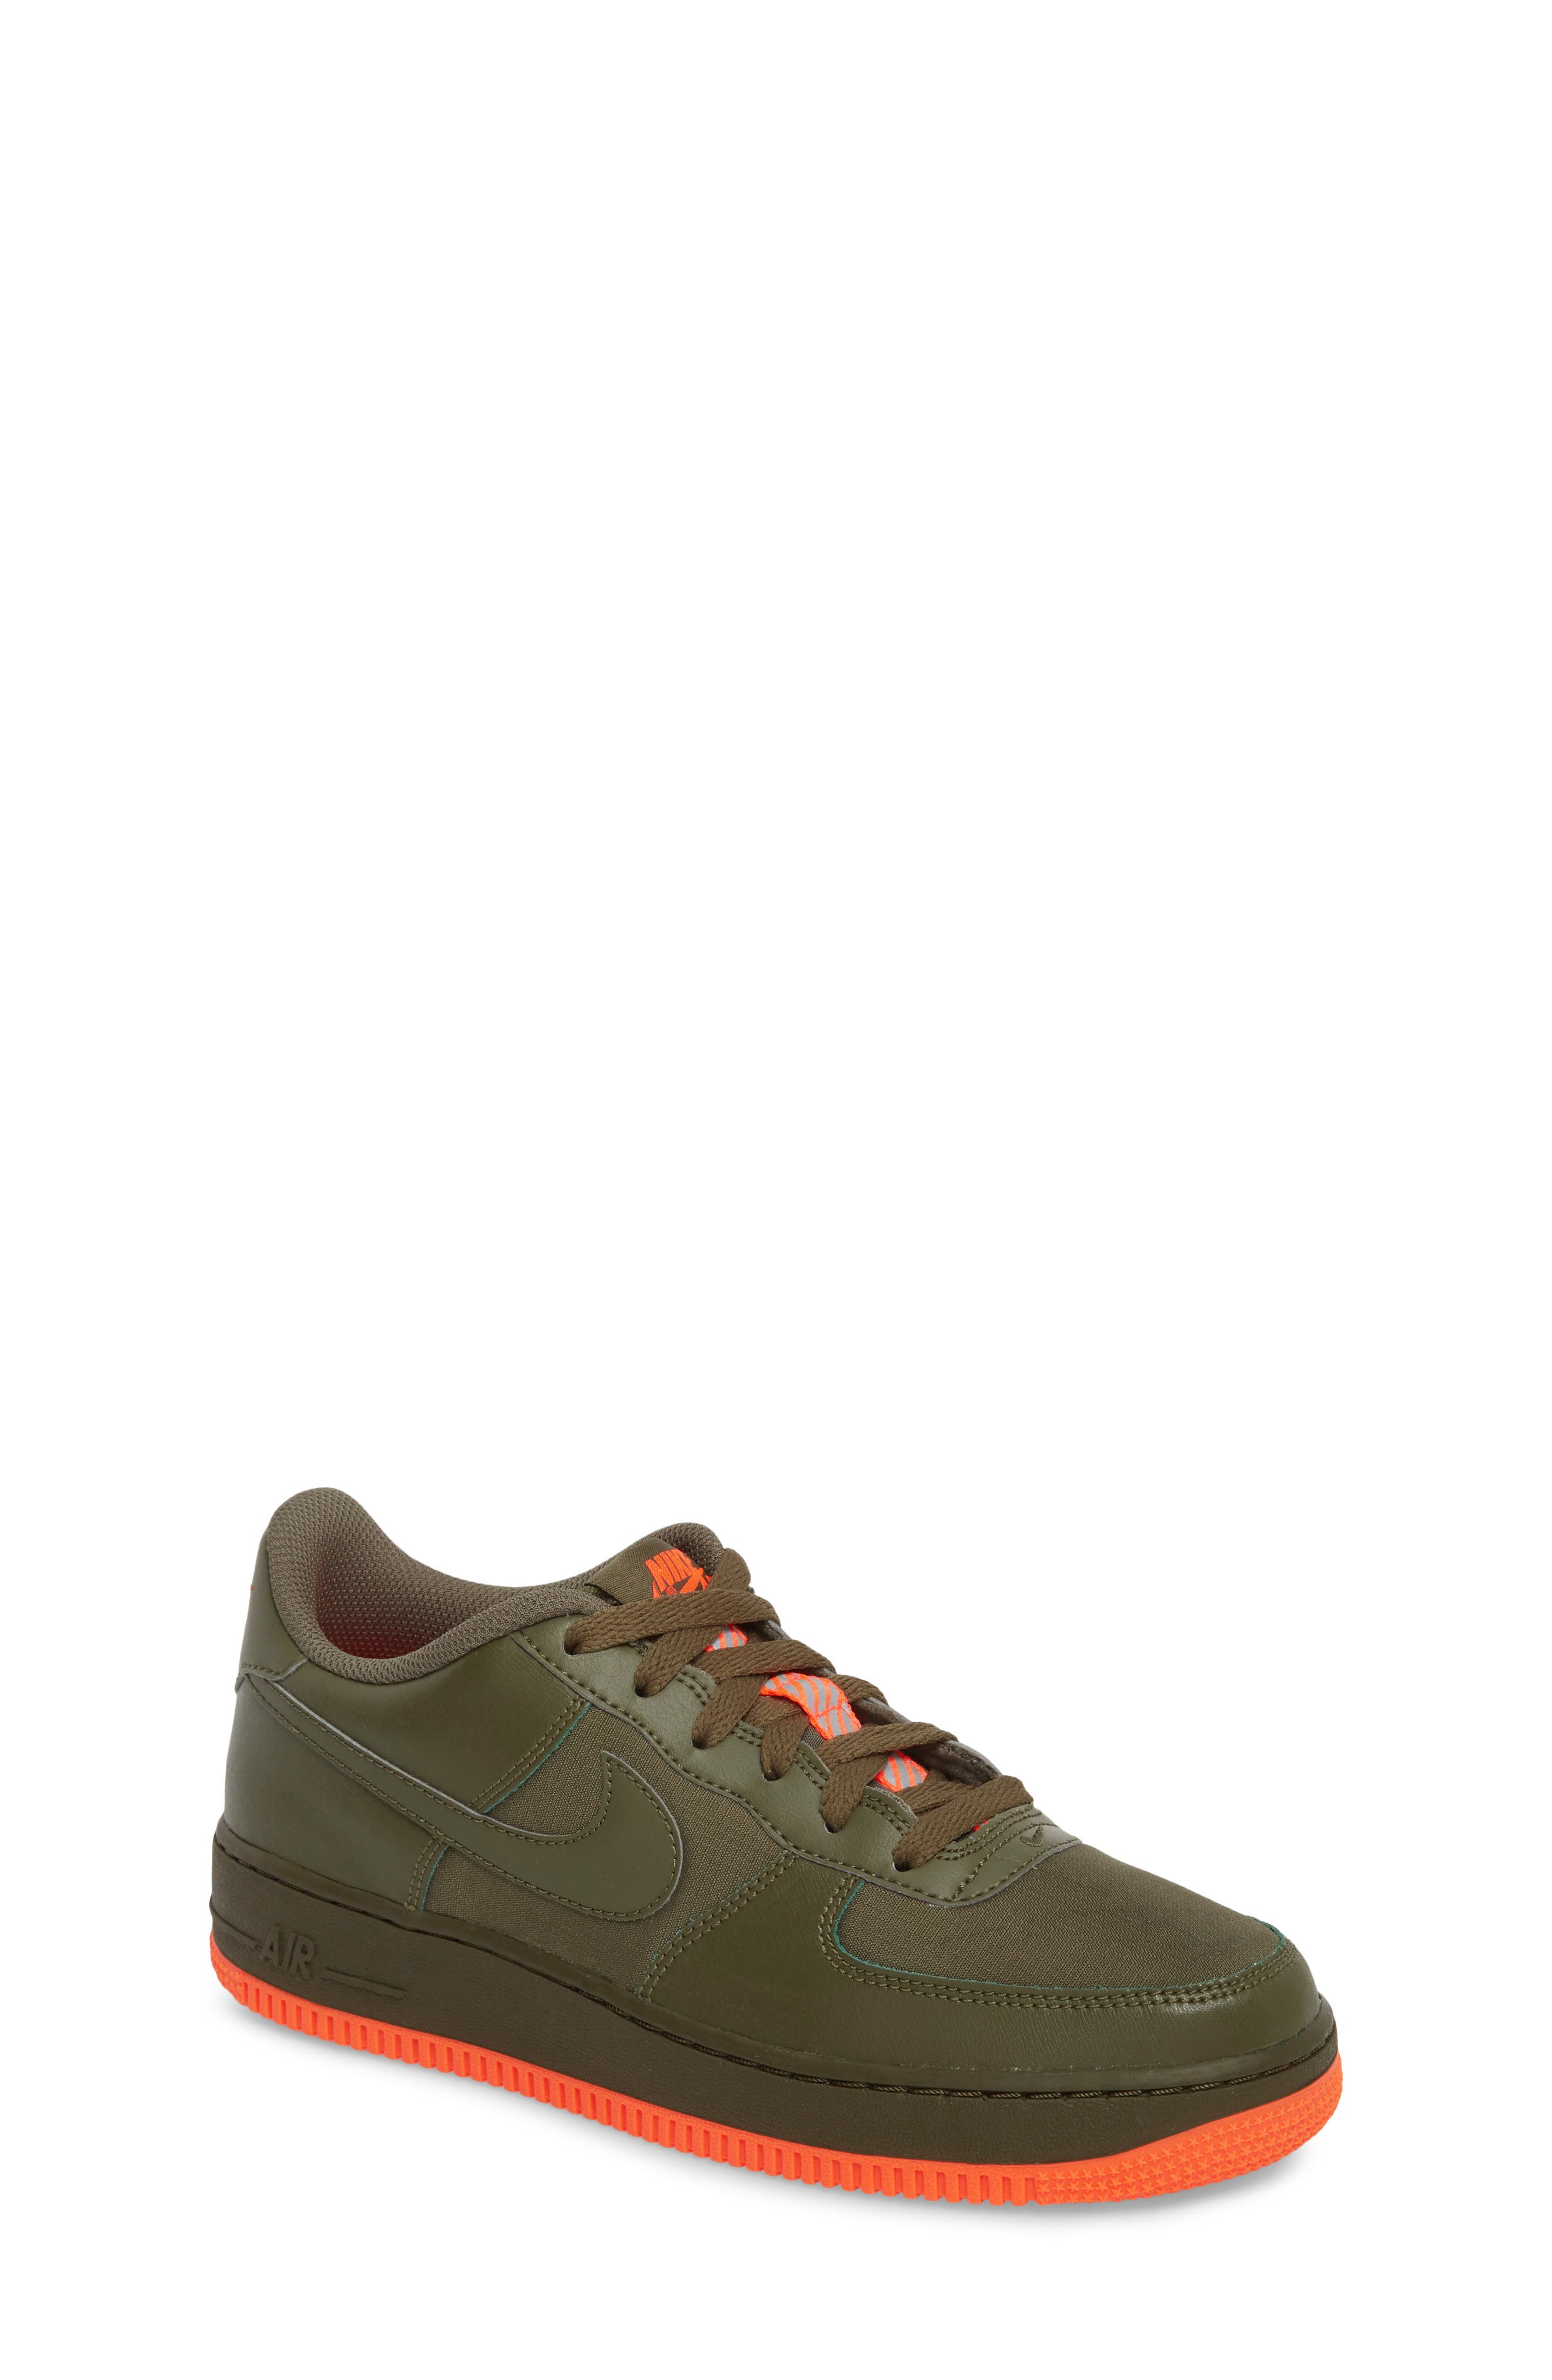 Air Force 1 LV8 Sneaker,                         Main,                         color, MEDIUM OLIVE/ TOTAL CRIMSON